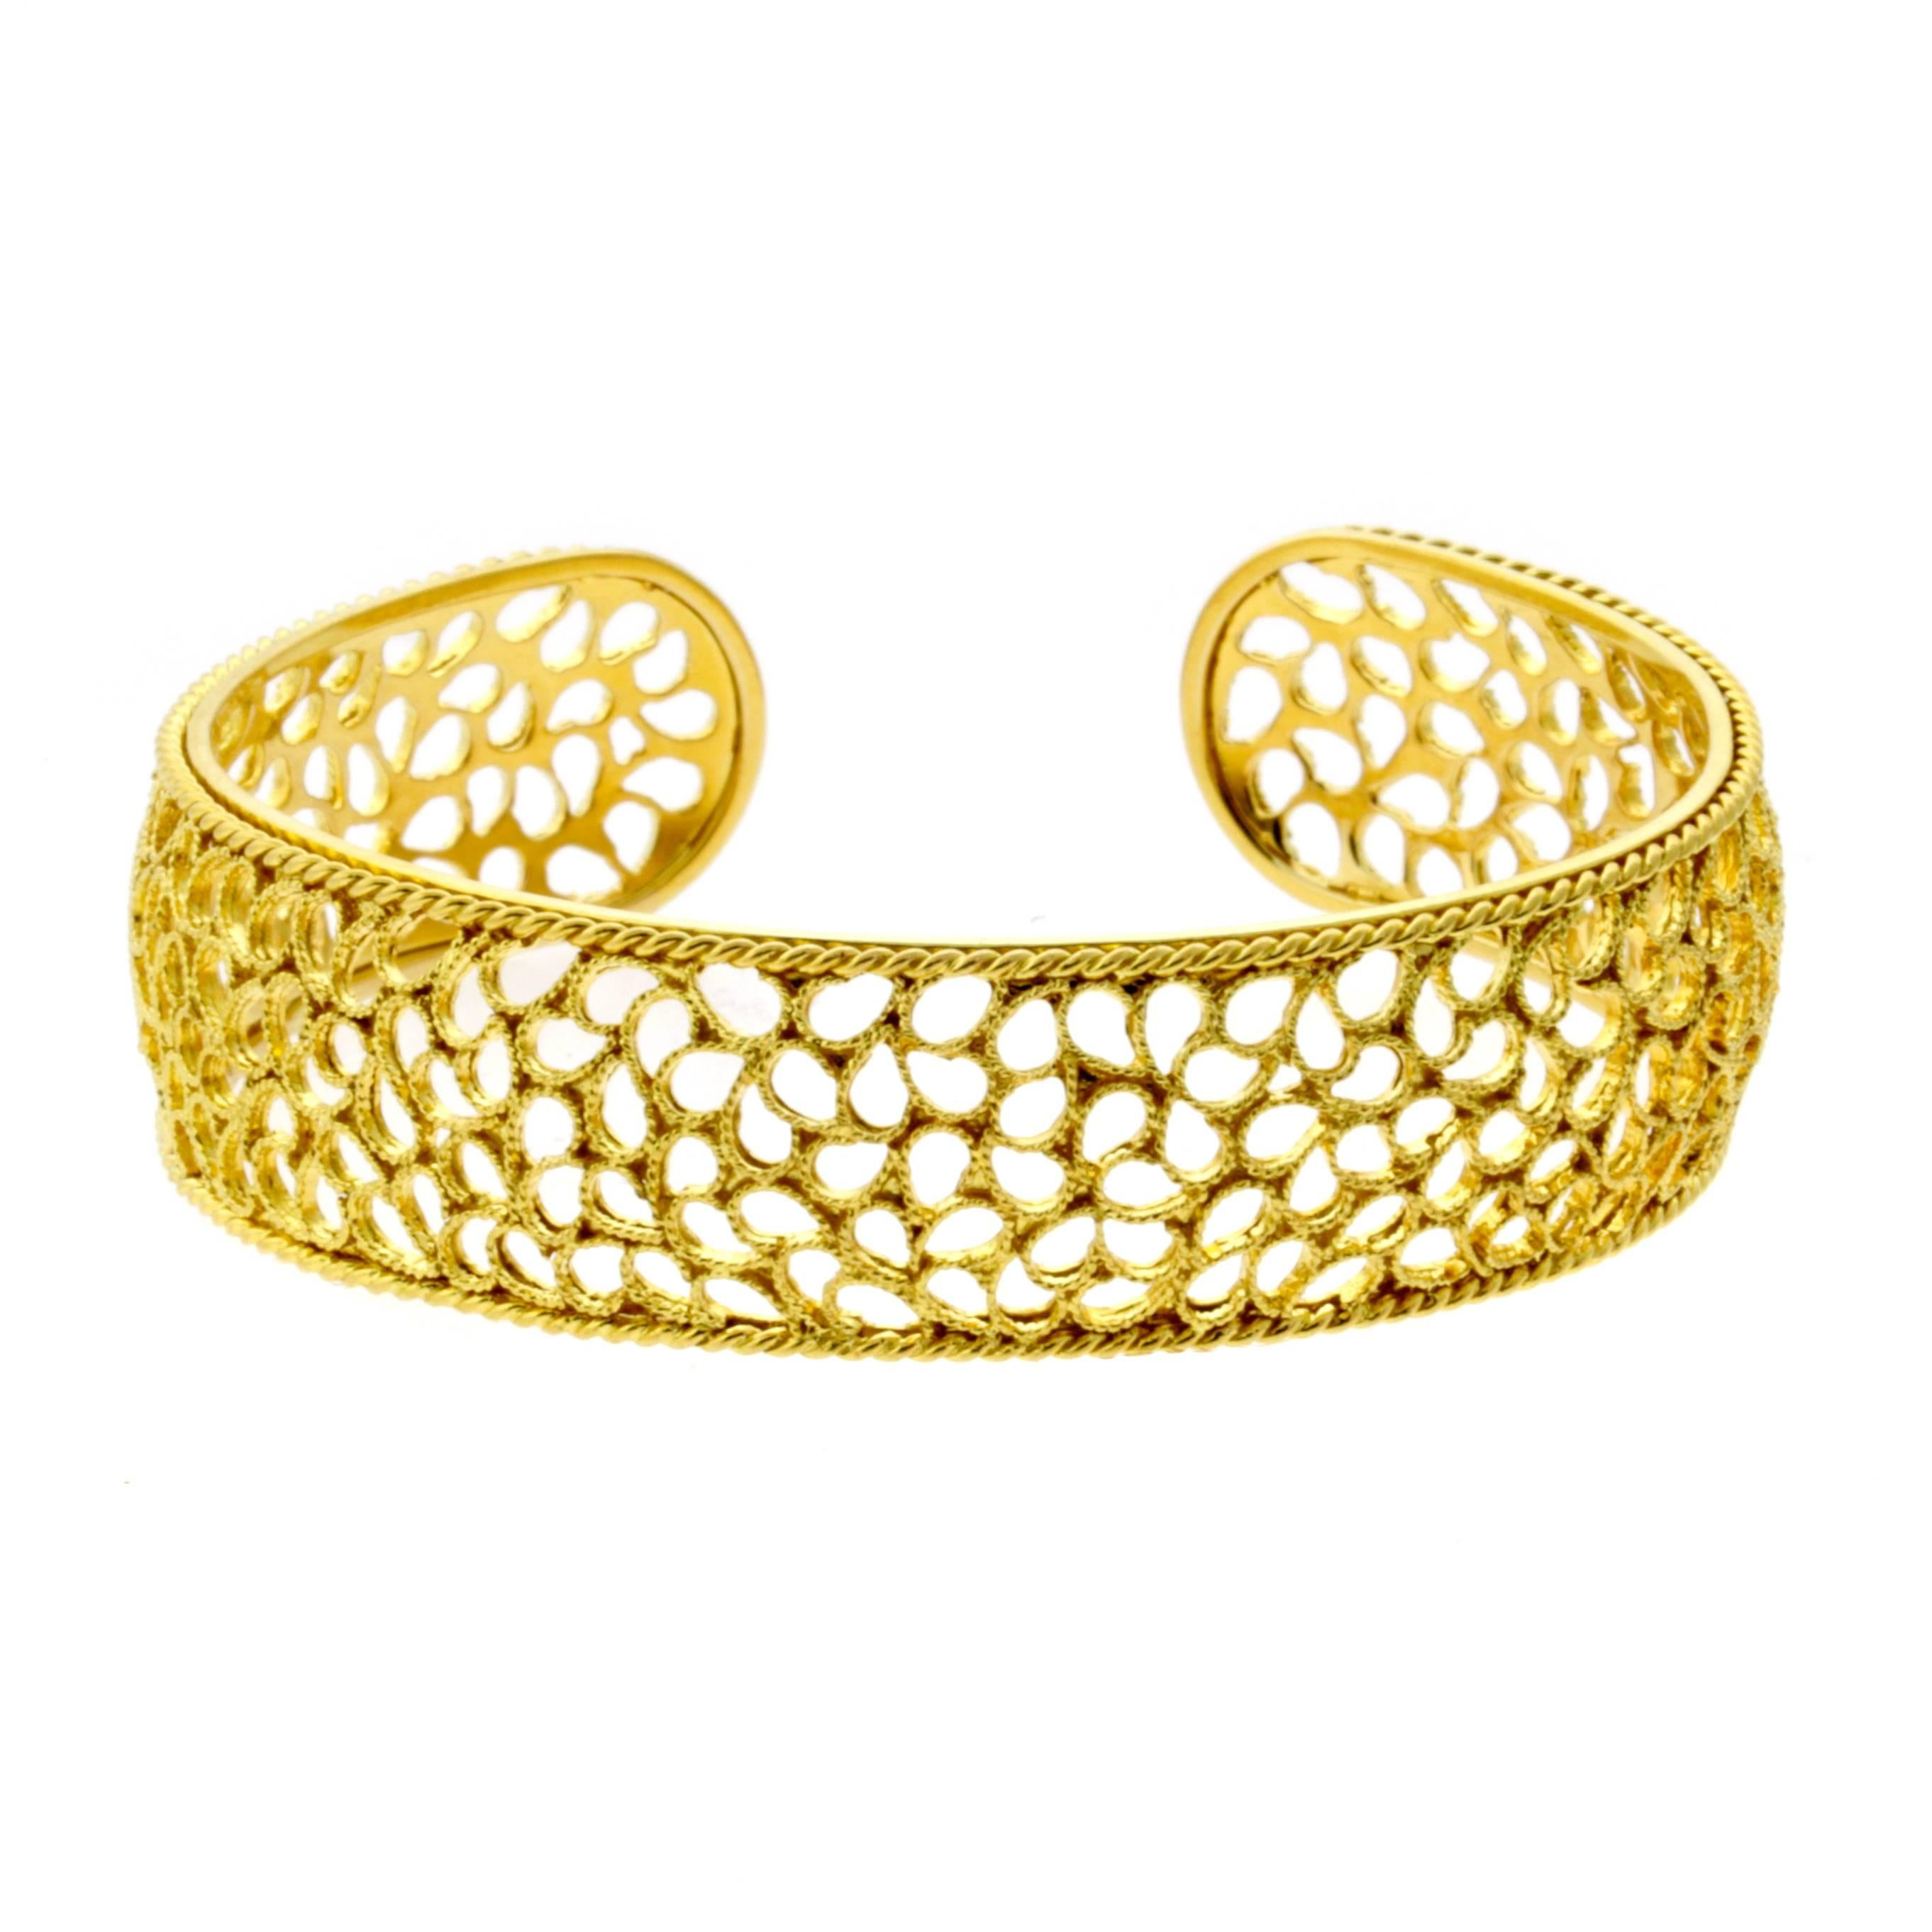 jewelry category classic bangles canoe bracelets categories product